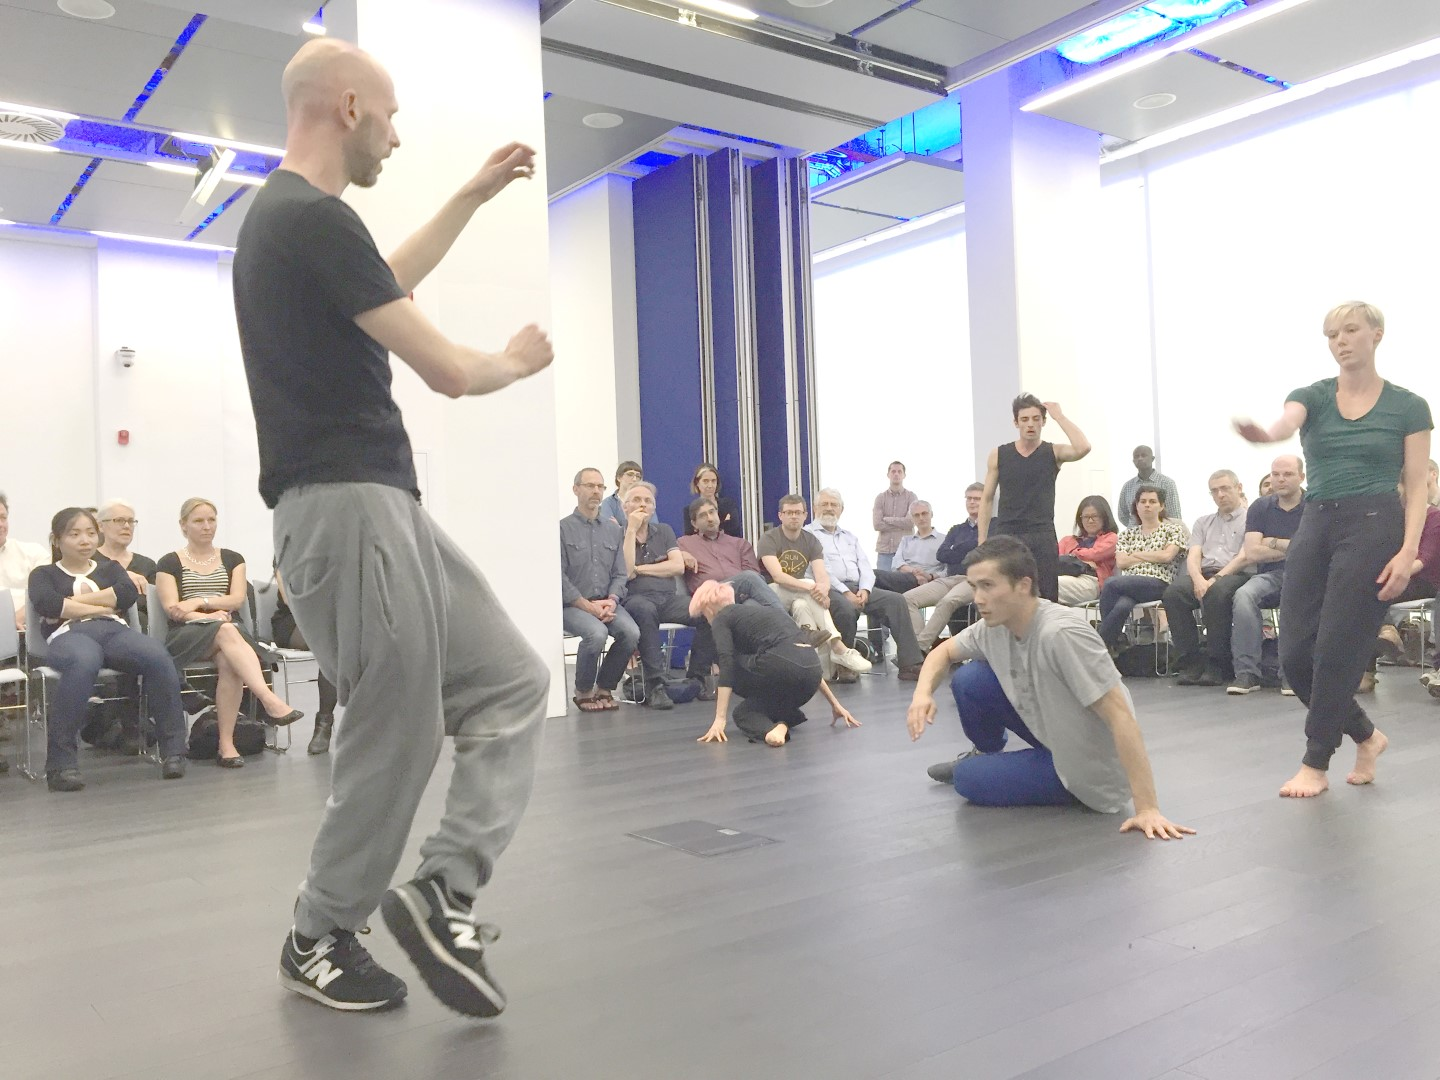 Sainsbury Wellcome Centre Wayne McGregor Artist in Residence at SWC (c) Ian Ritchie Architects